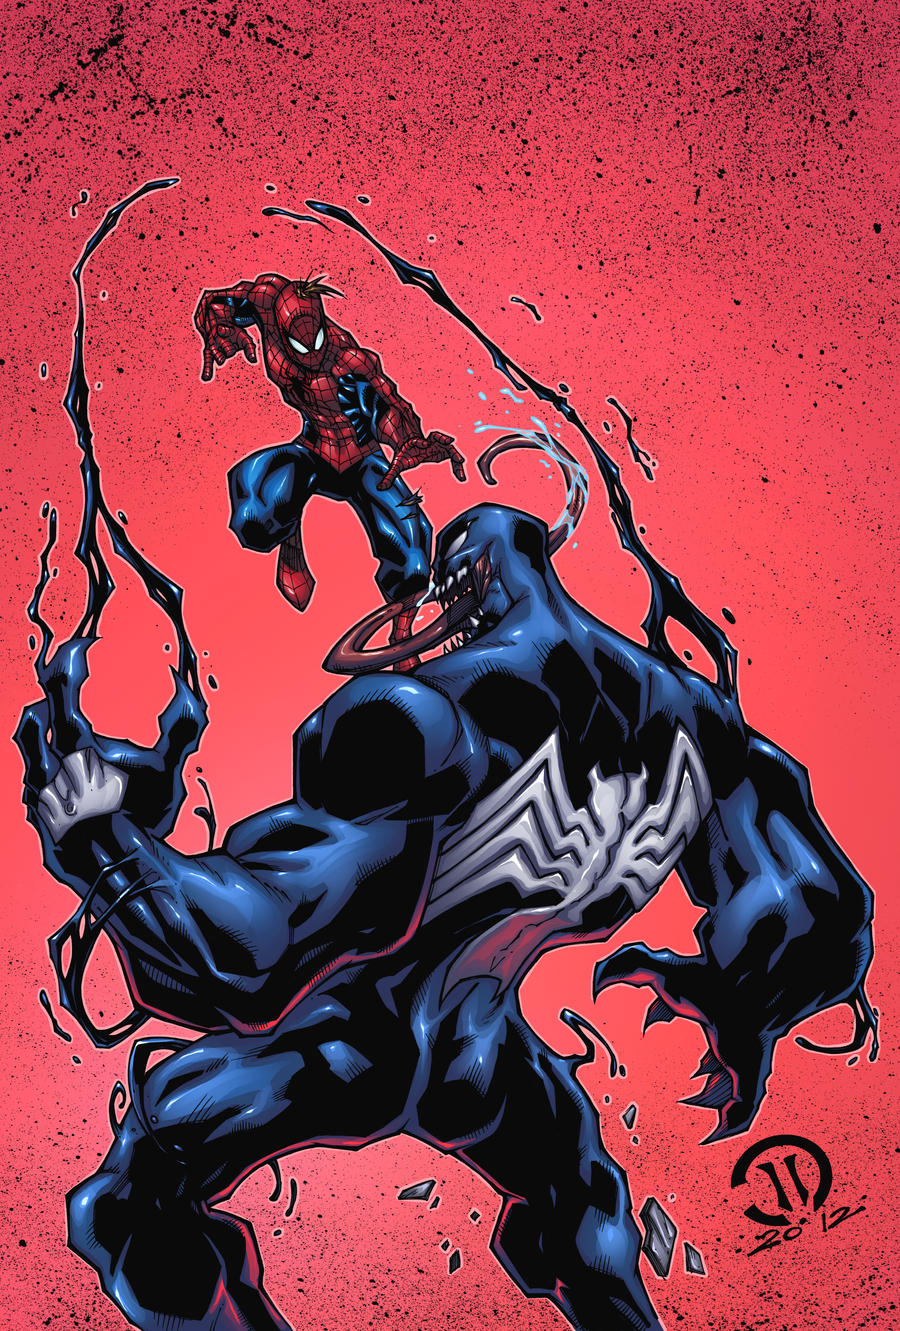 Spiderman vs Venom FINAL by JoeyVazquez